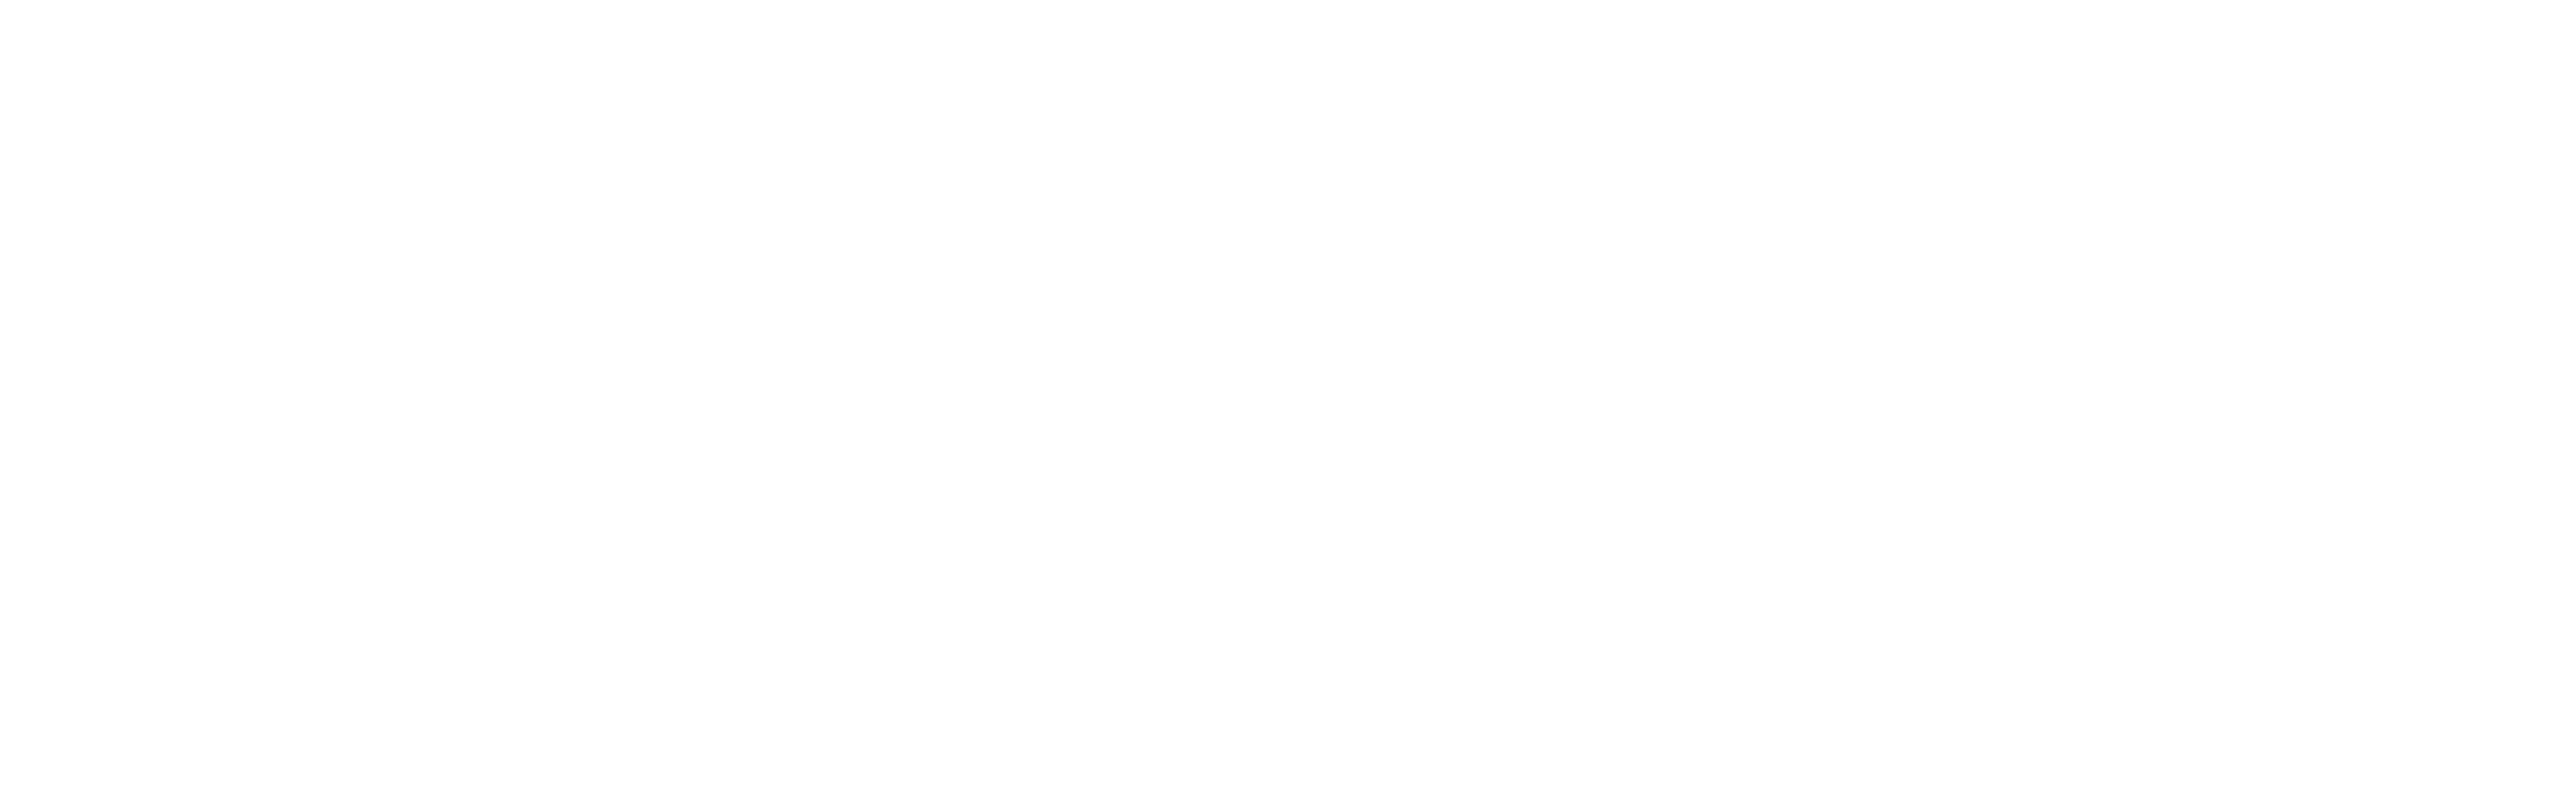 Fountain Productions Logo